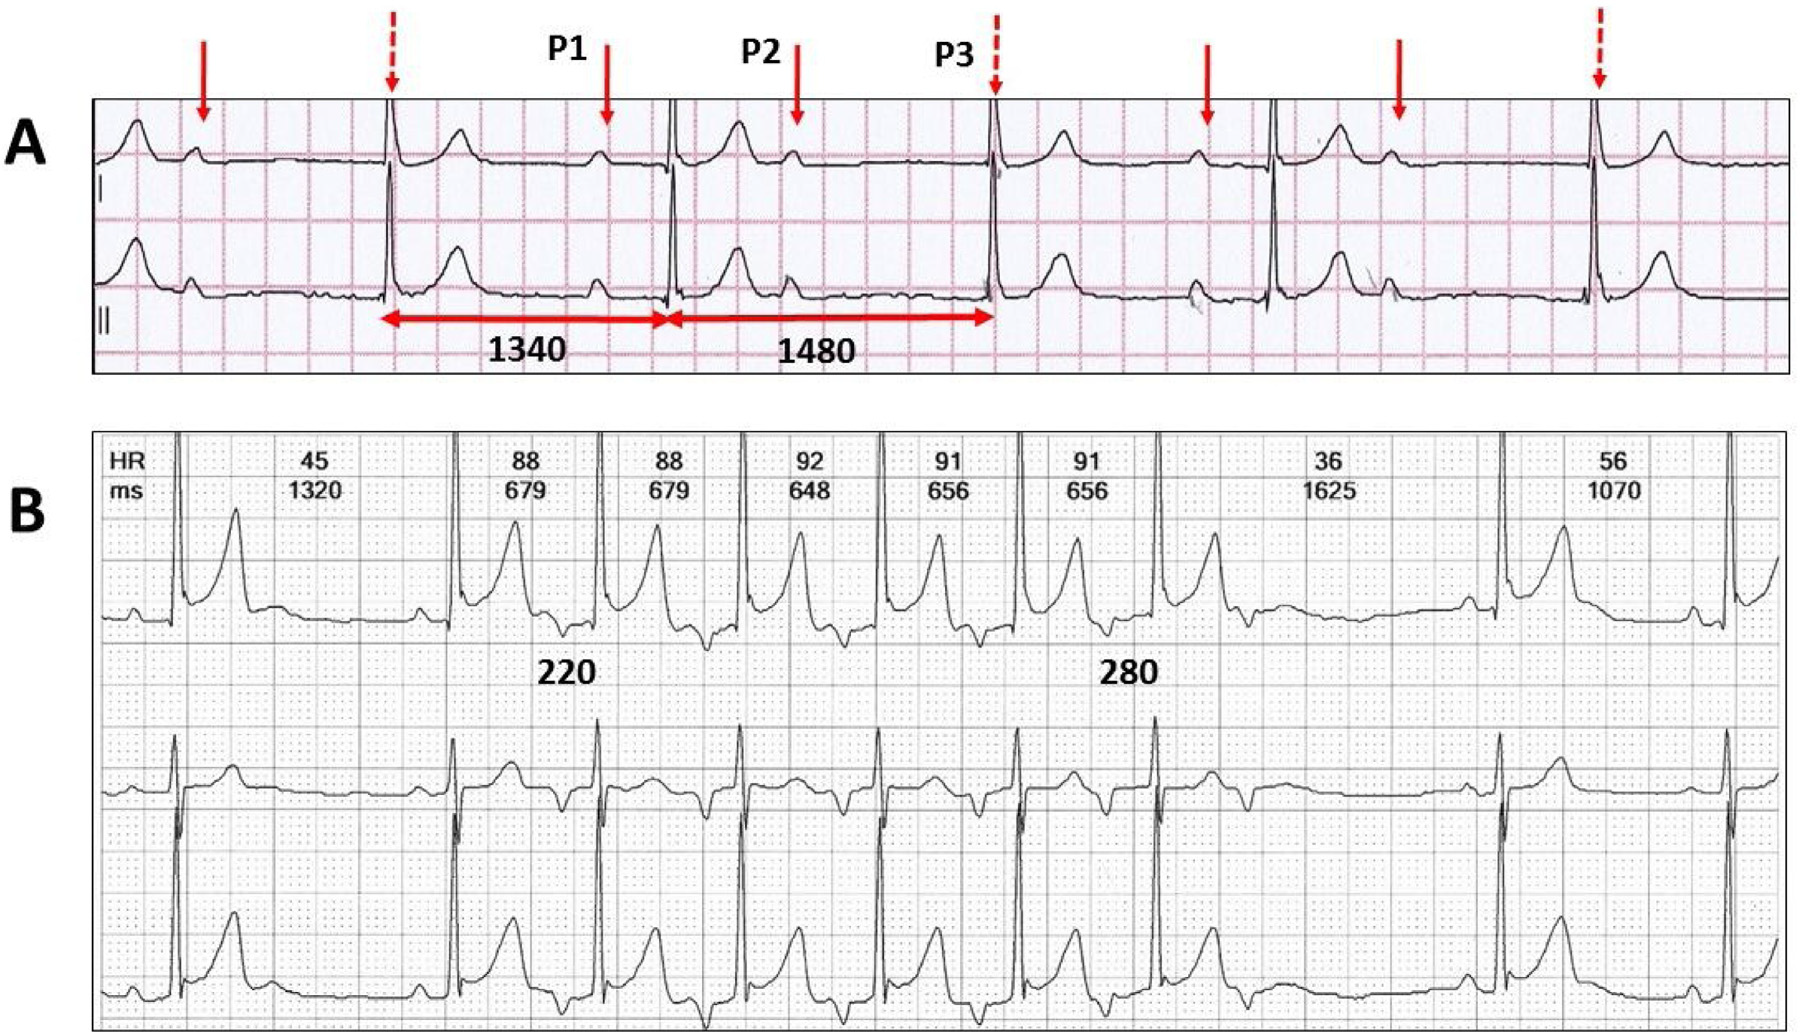 Figure 3 A: Two channel Holter monitor recording of an atypical Wenckebach AV sequence without an easily identifiable pause. There are different ways to interpret this tracing. P3 is concealed, whereas P2 may not conduct or has a very long PR interval. The QRS associated with P3 may be a junctional escape beat. This may be a 3:1 Wenckebach AV sequence with junctional escape. B: Three channel Holter monitor recording of a Wenckebach AV sequence during junctional rhythm.